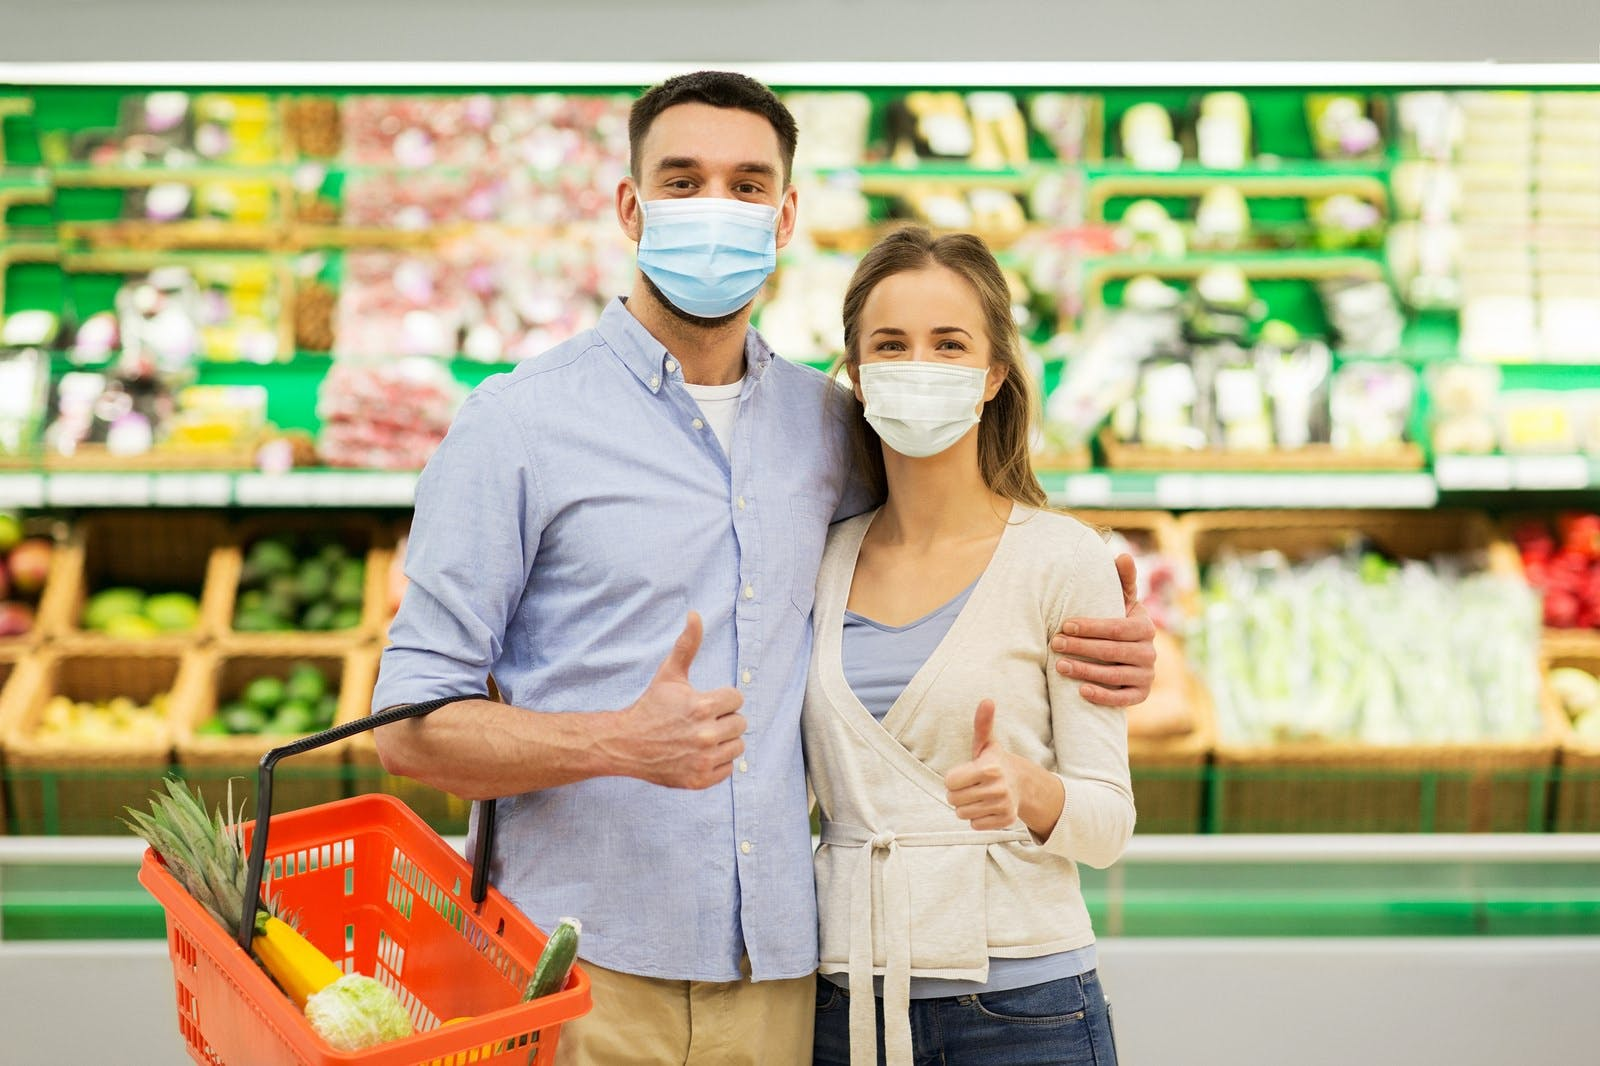 Couple shopping in a supermarket while wearing face masks